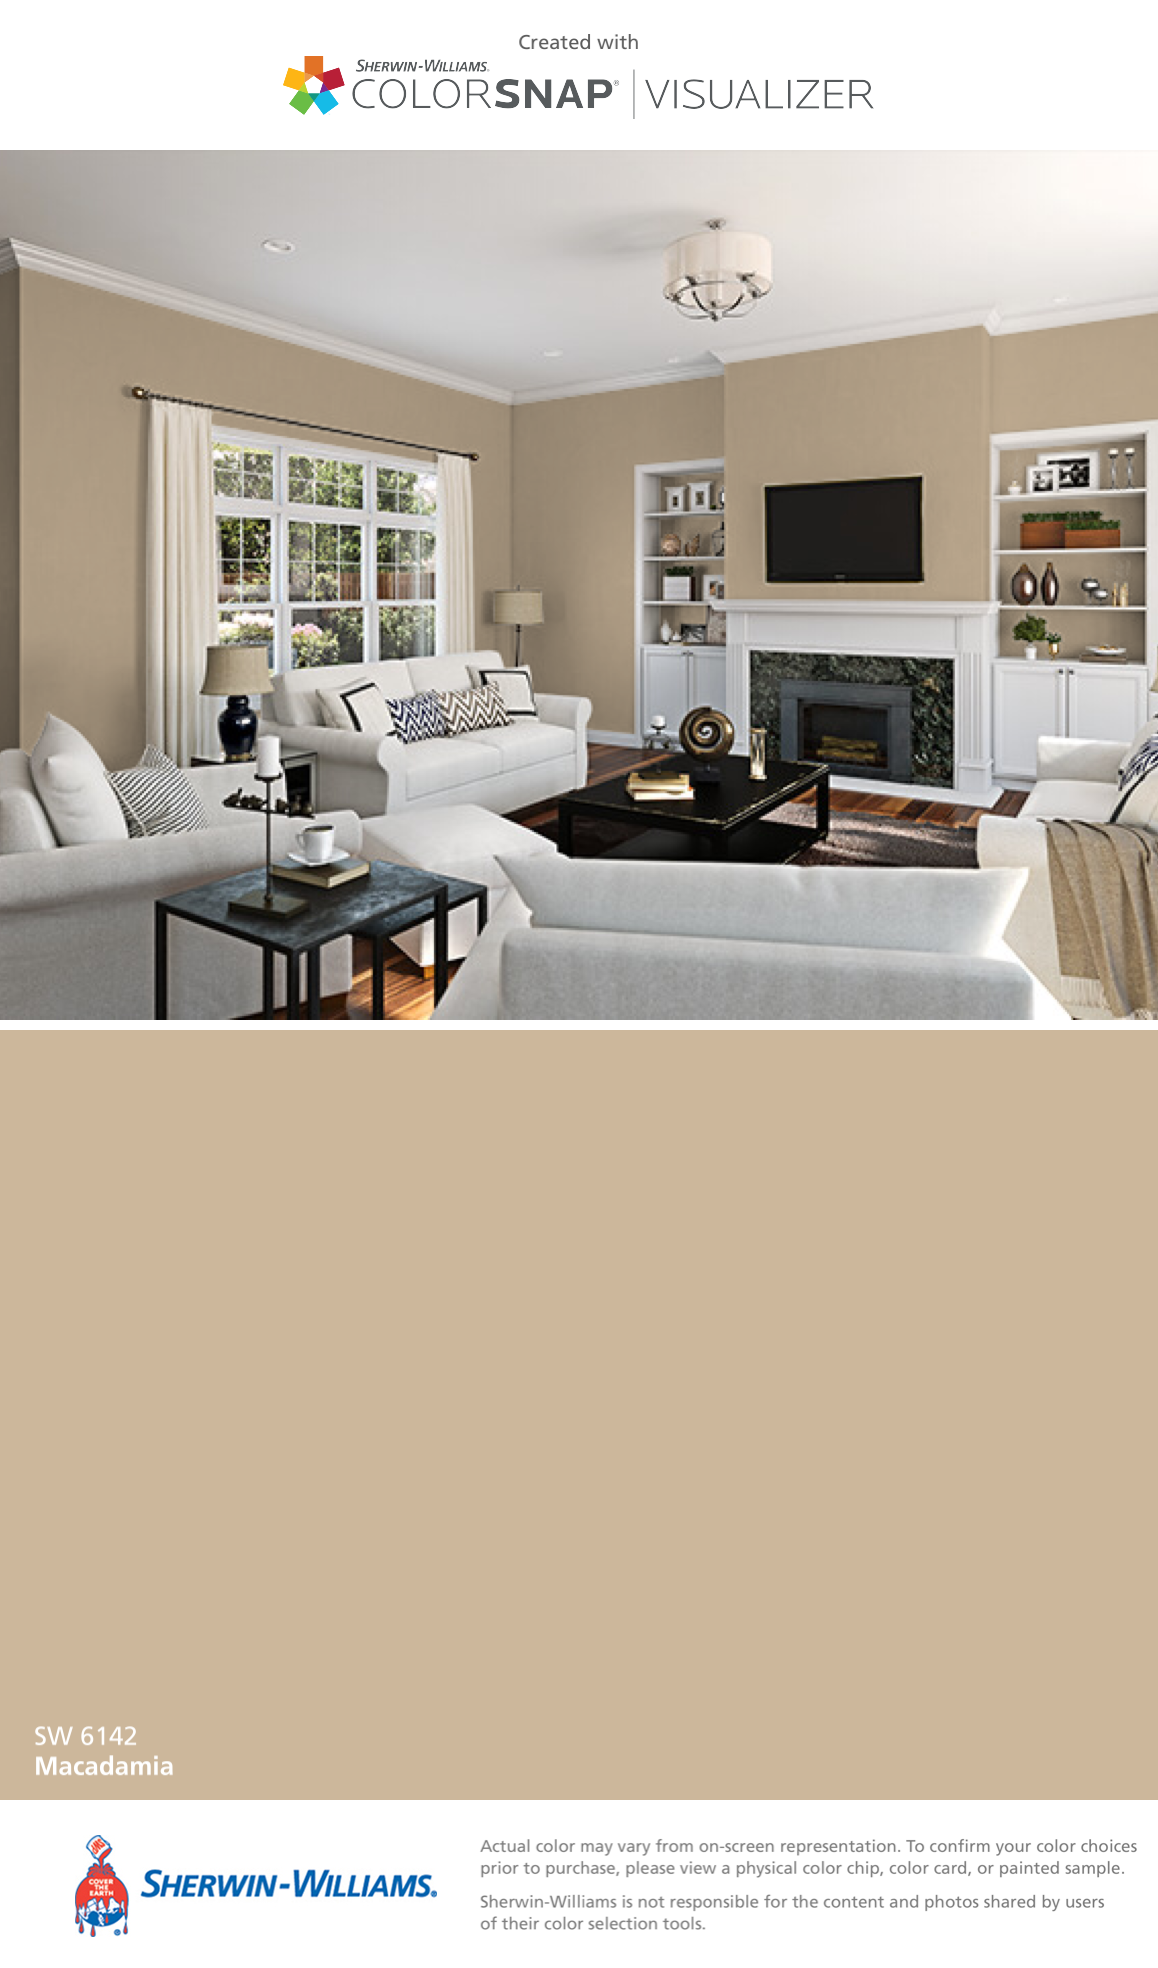 I found this color with colorsnap visualizer for iphone by sherwin williams macadamia sw 6142